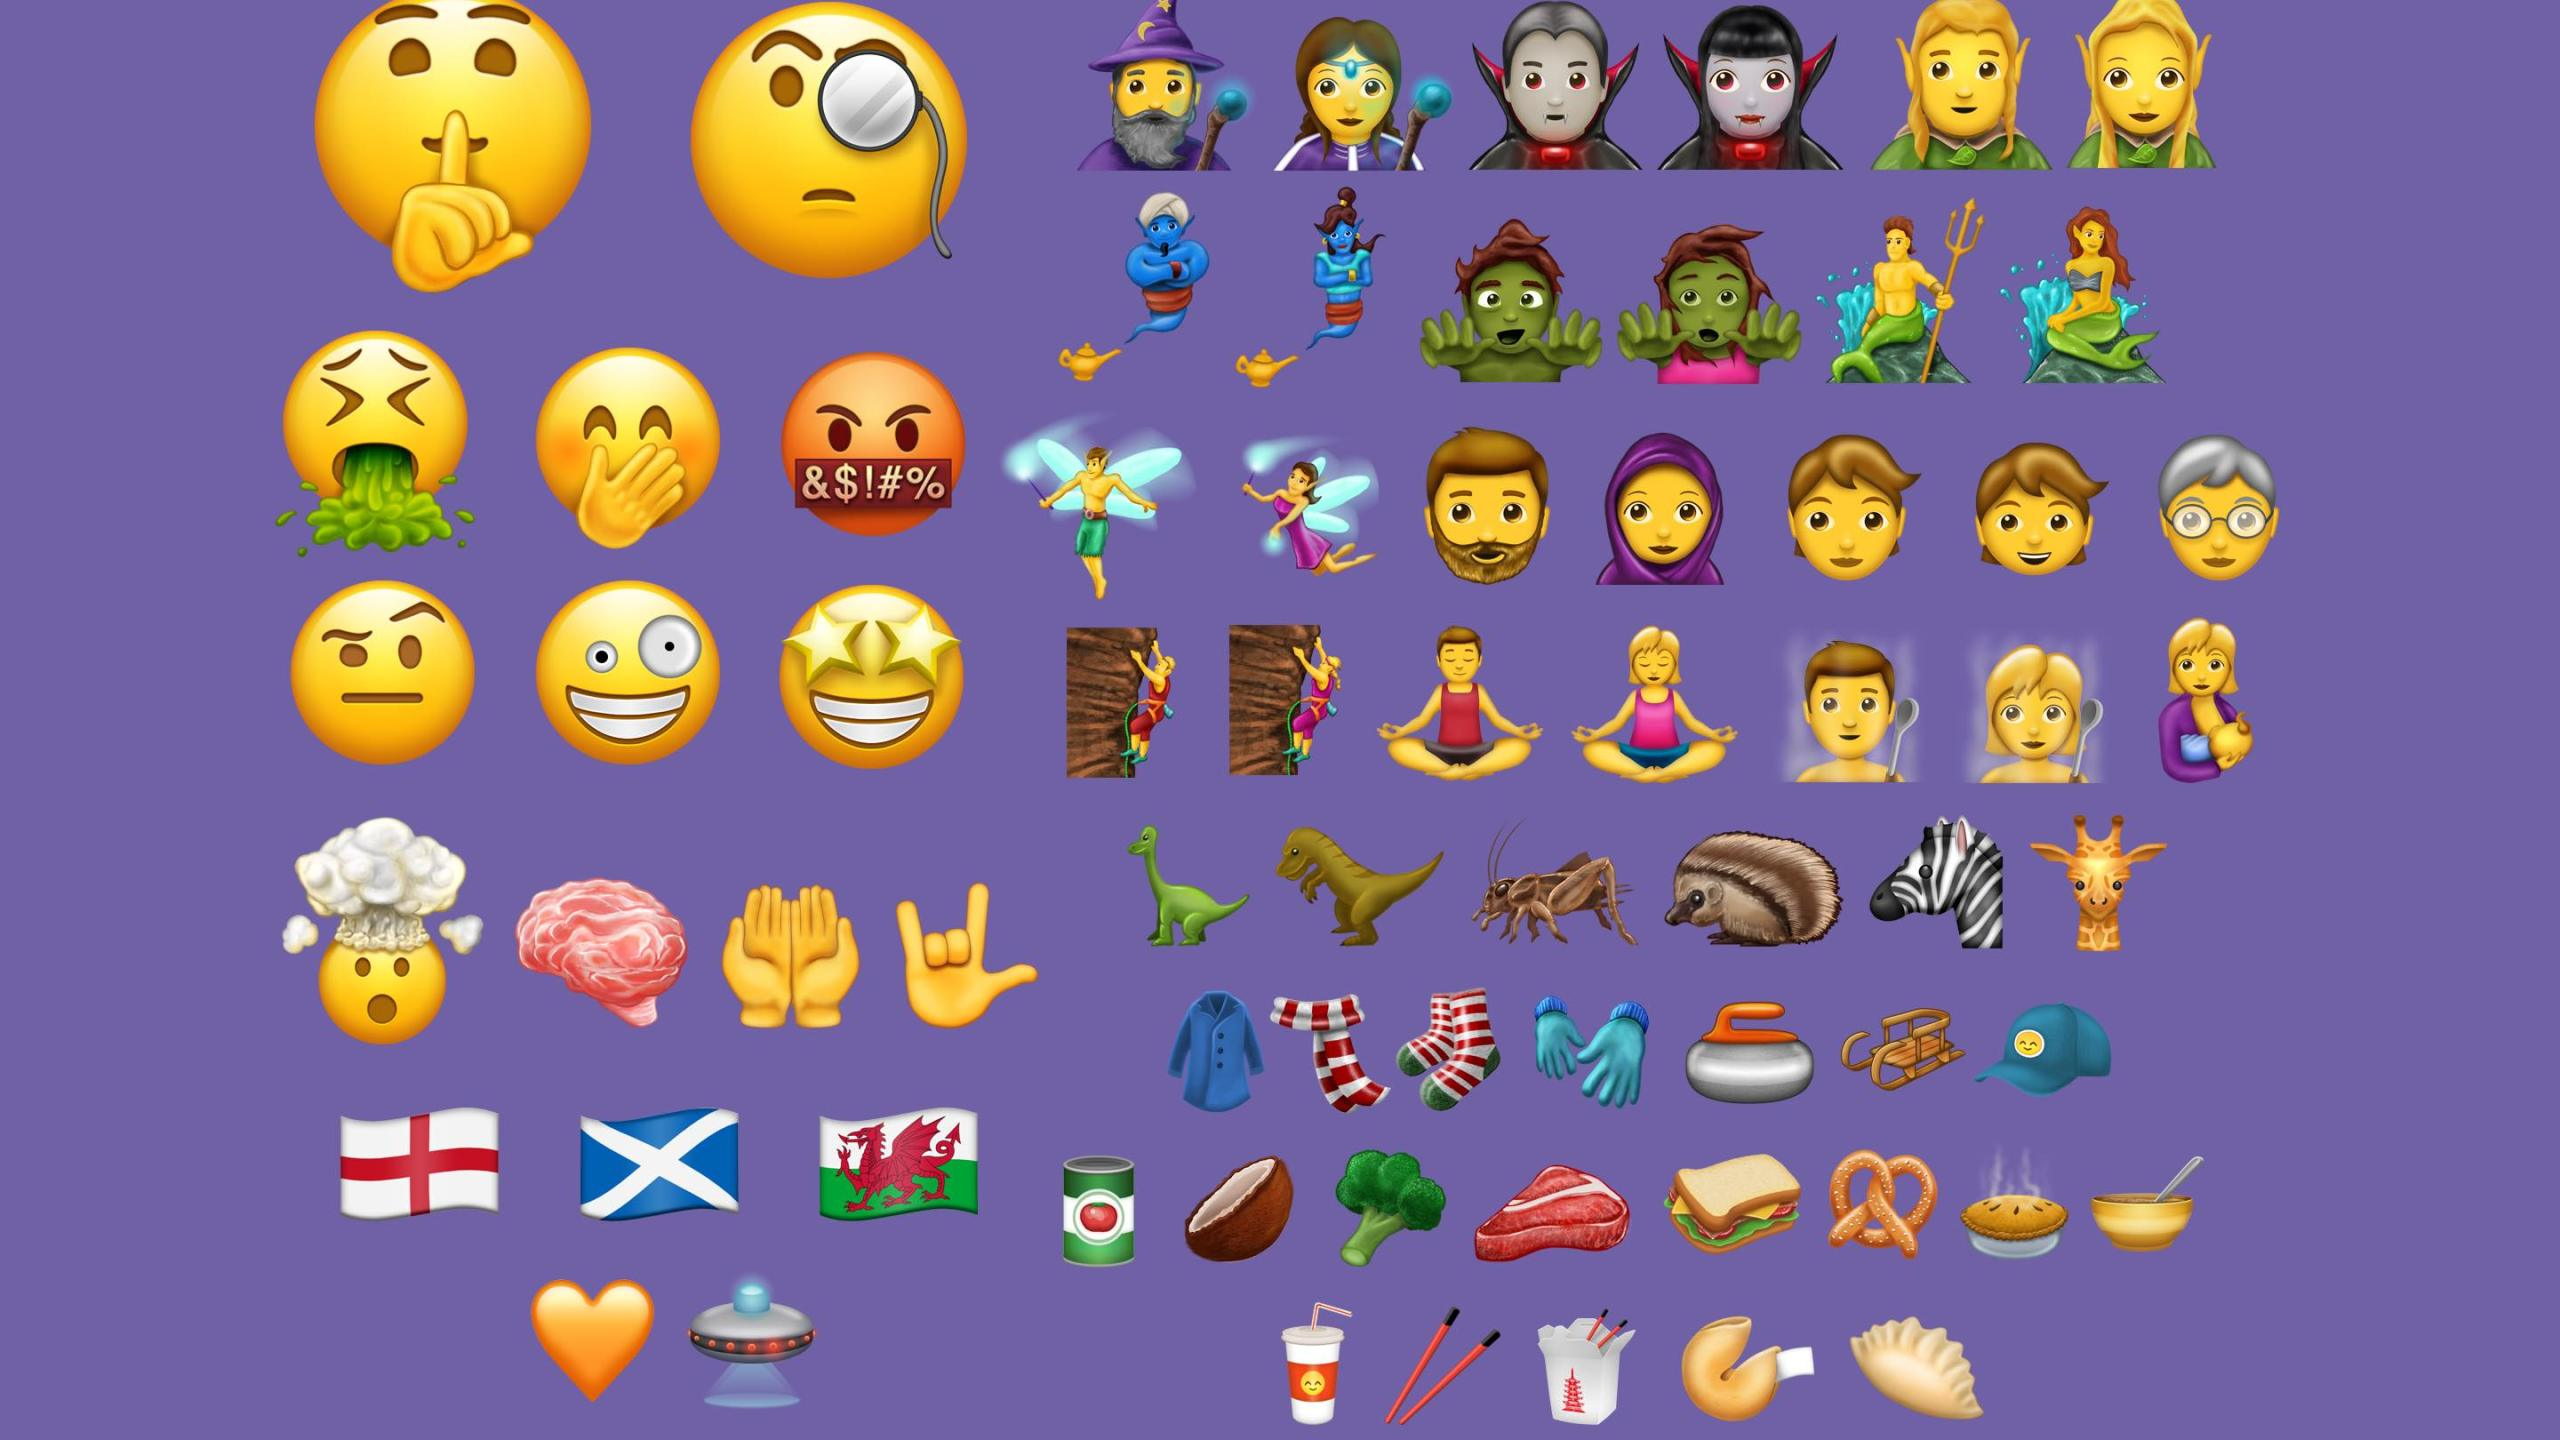 emoji-5-sample-images-overview-emojipedia_443331